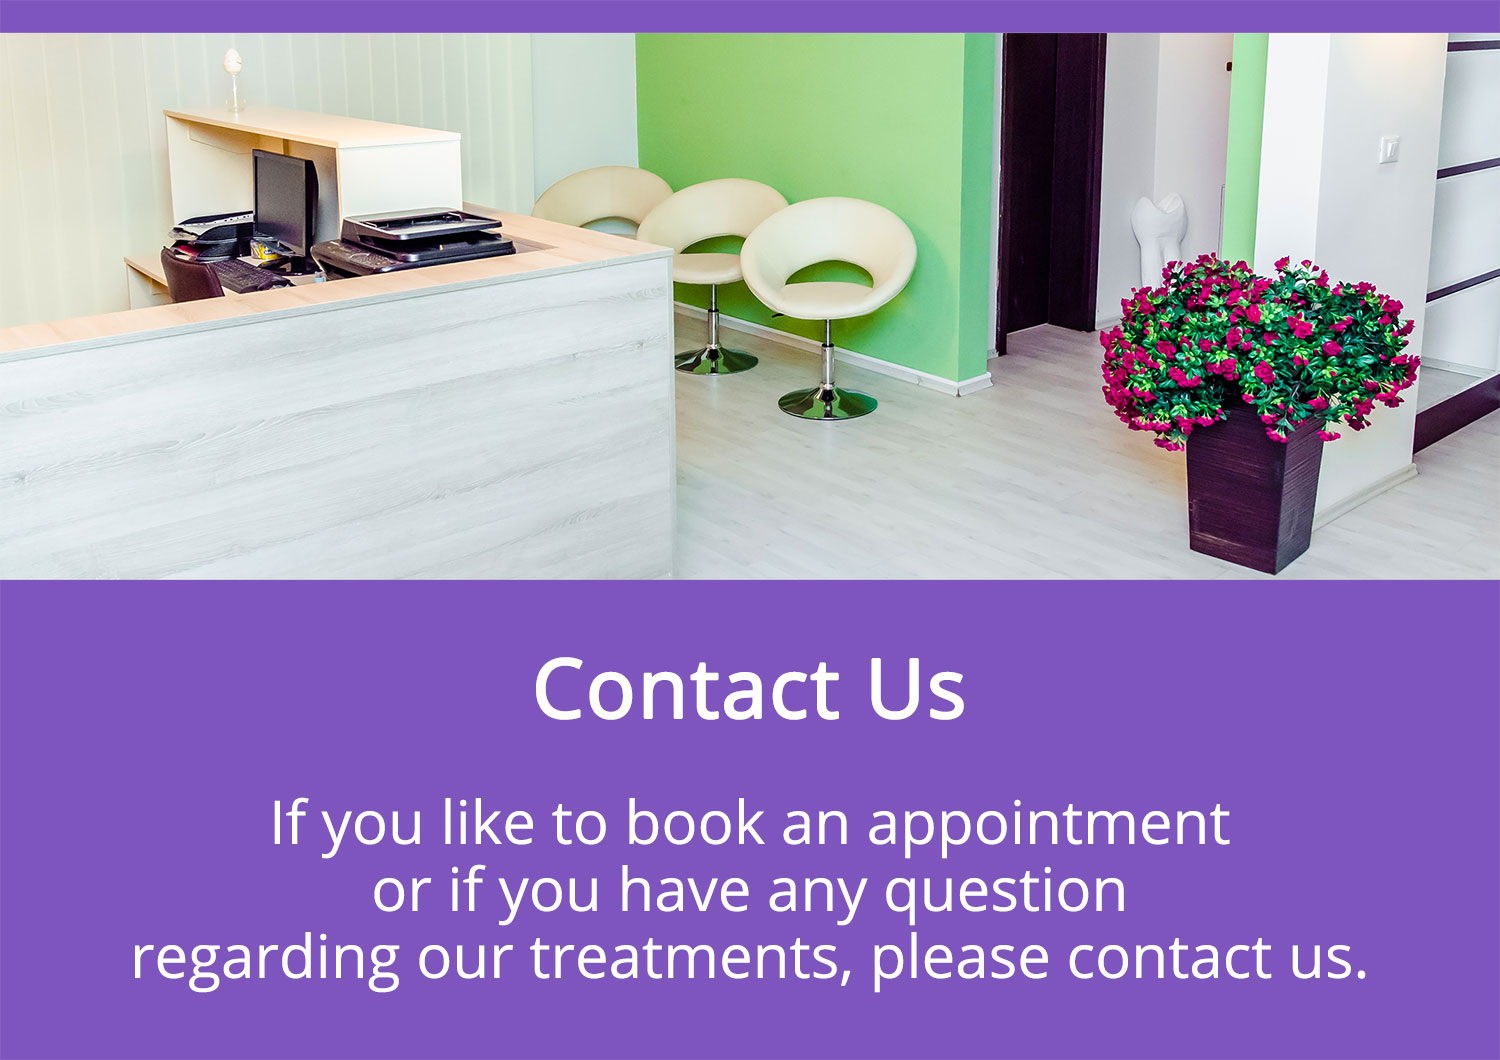 Contact Us - Diana Smile Dental Clinic